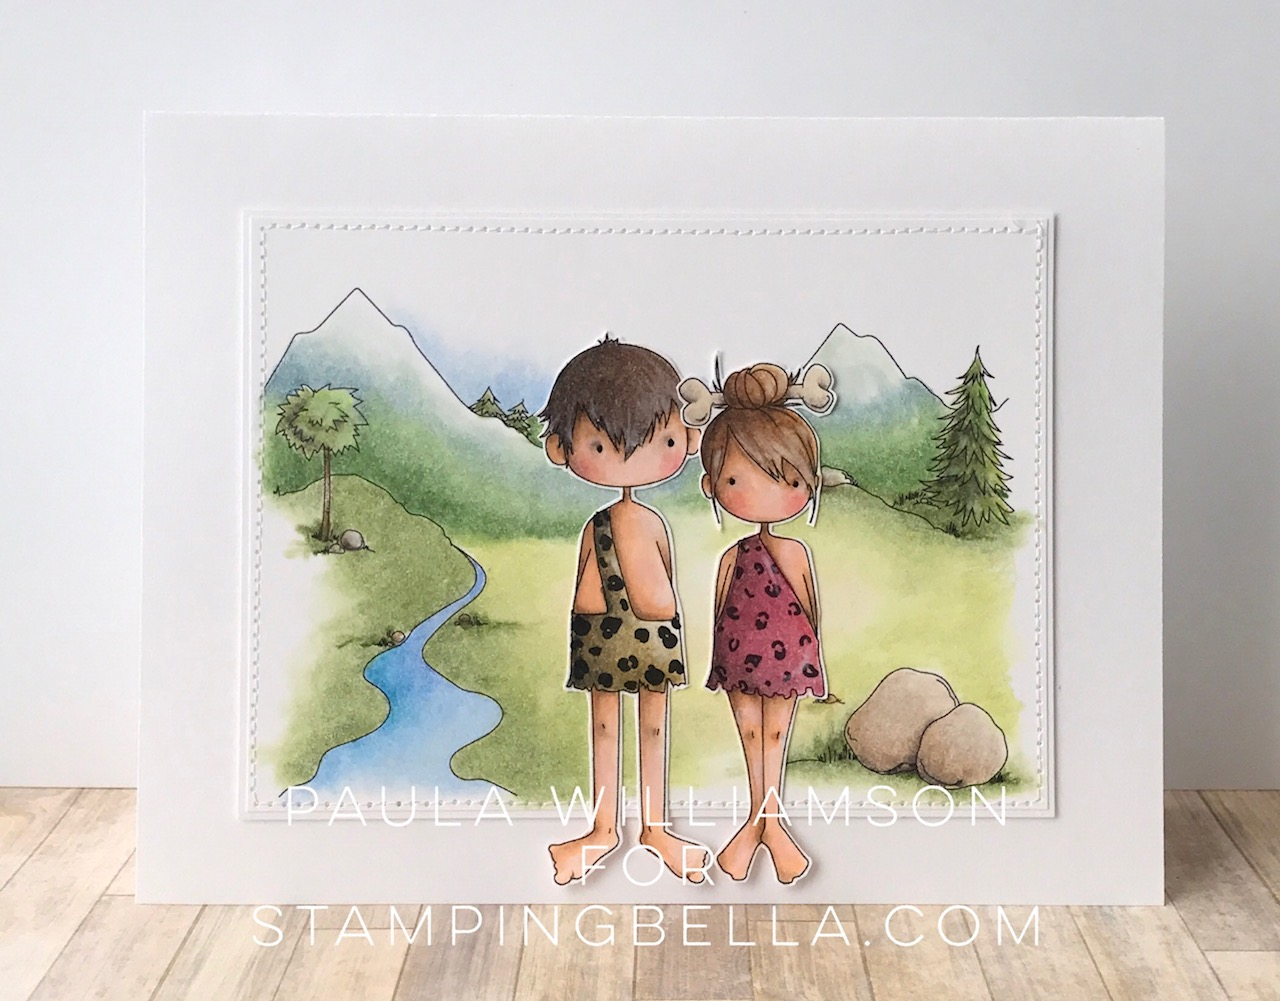 Stamping Bella SUMMER 2017 RELEASE-CAVE KIDS, CAVE KIDS BACKDROP rubber stamps. Card by Paula Williamson